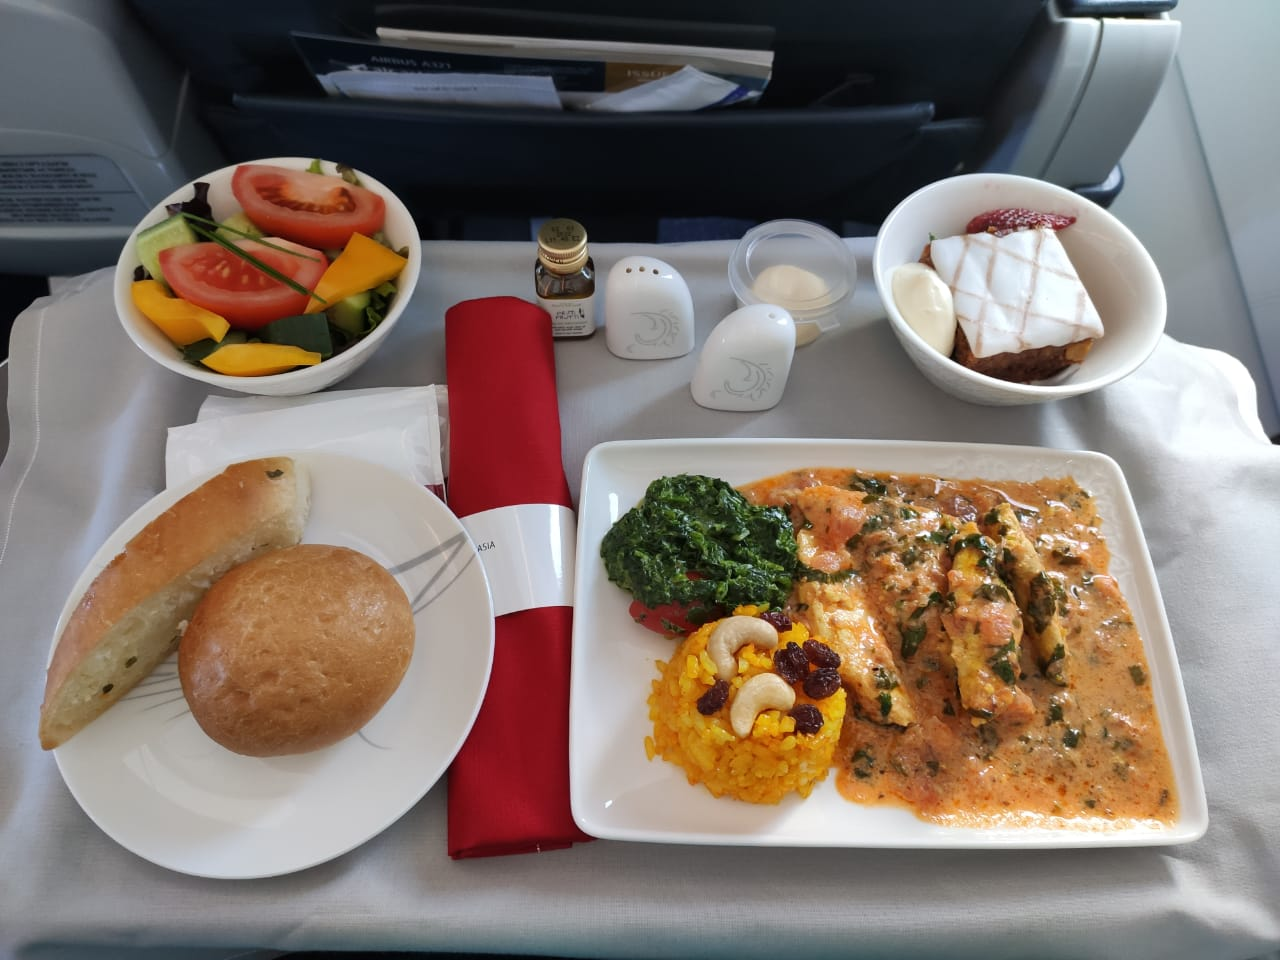 Hot meals in business class of Air Astana on the flight Shymkent-Almaty, 2021